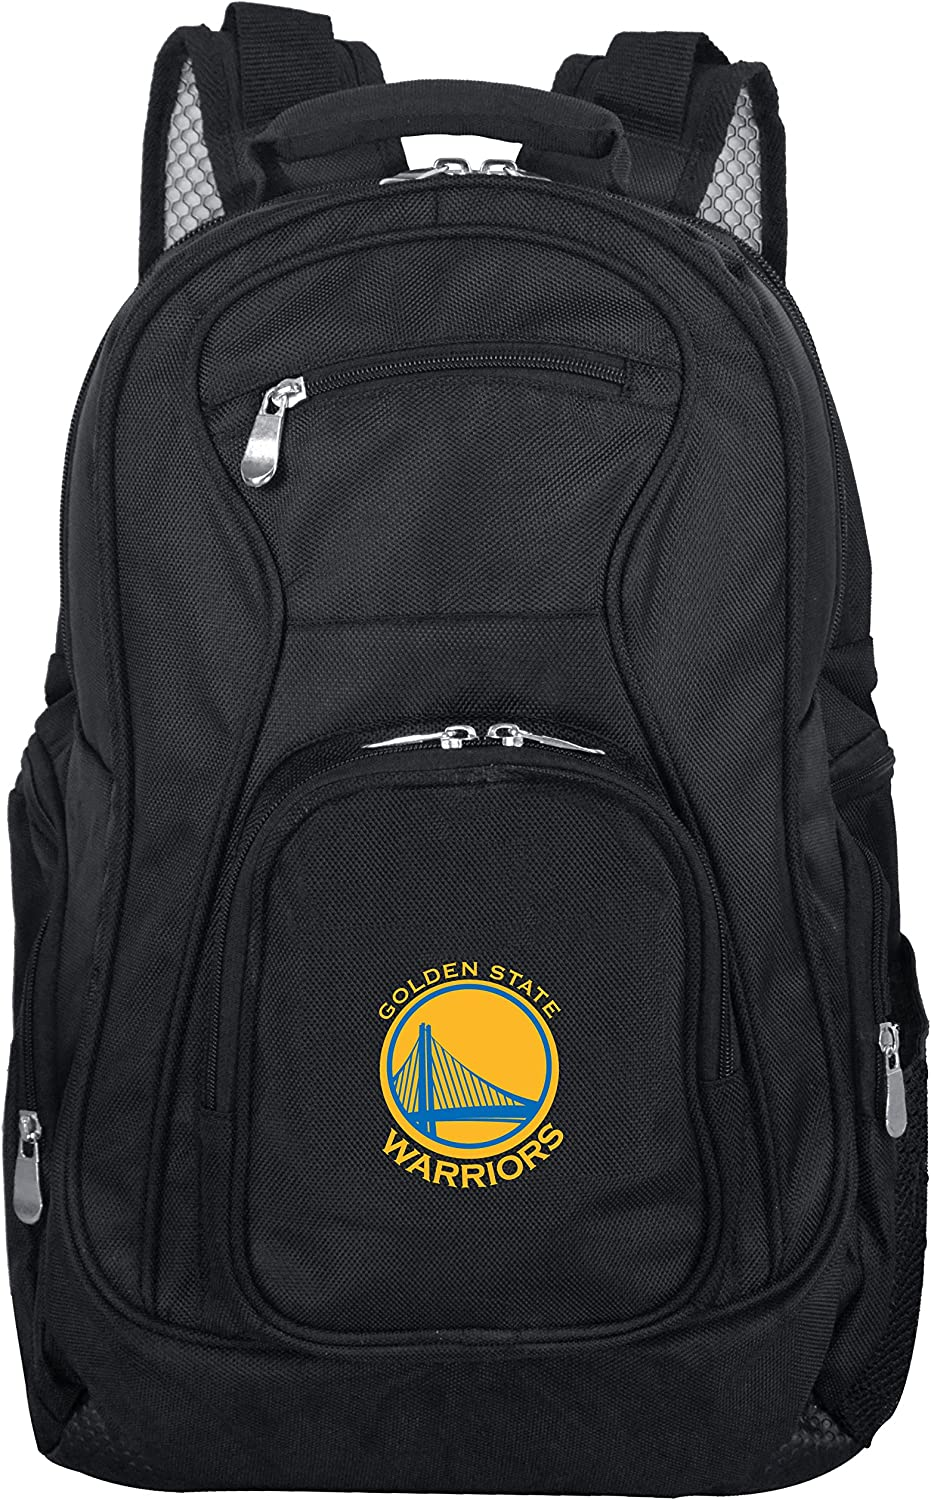 NBA Laptop Backpack, 19-inches, Black